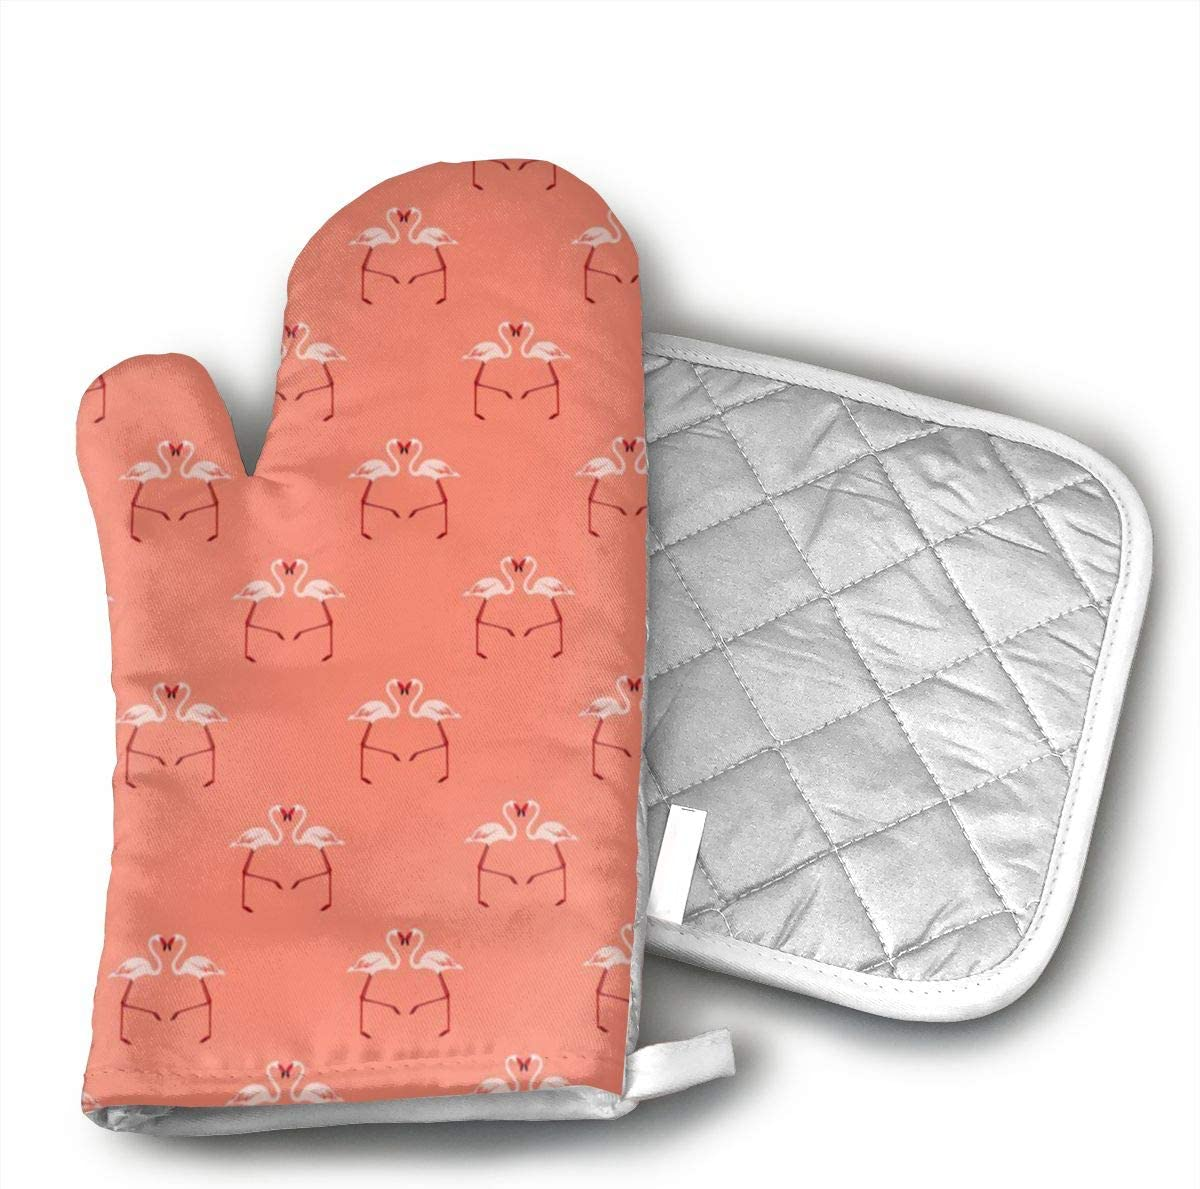 JFNNRUOP Pink Flamingoes On Coral Oven Mitts,with Potholders Oven Gloves,Insulated Quilted Cotton Potholders